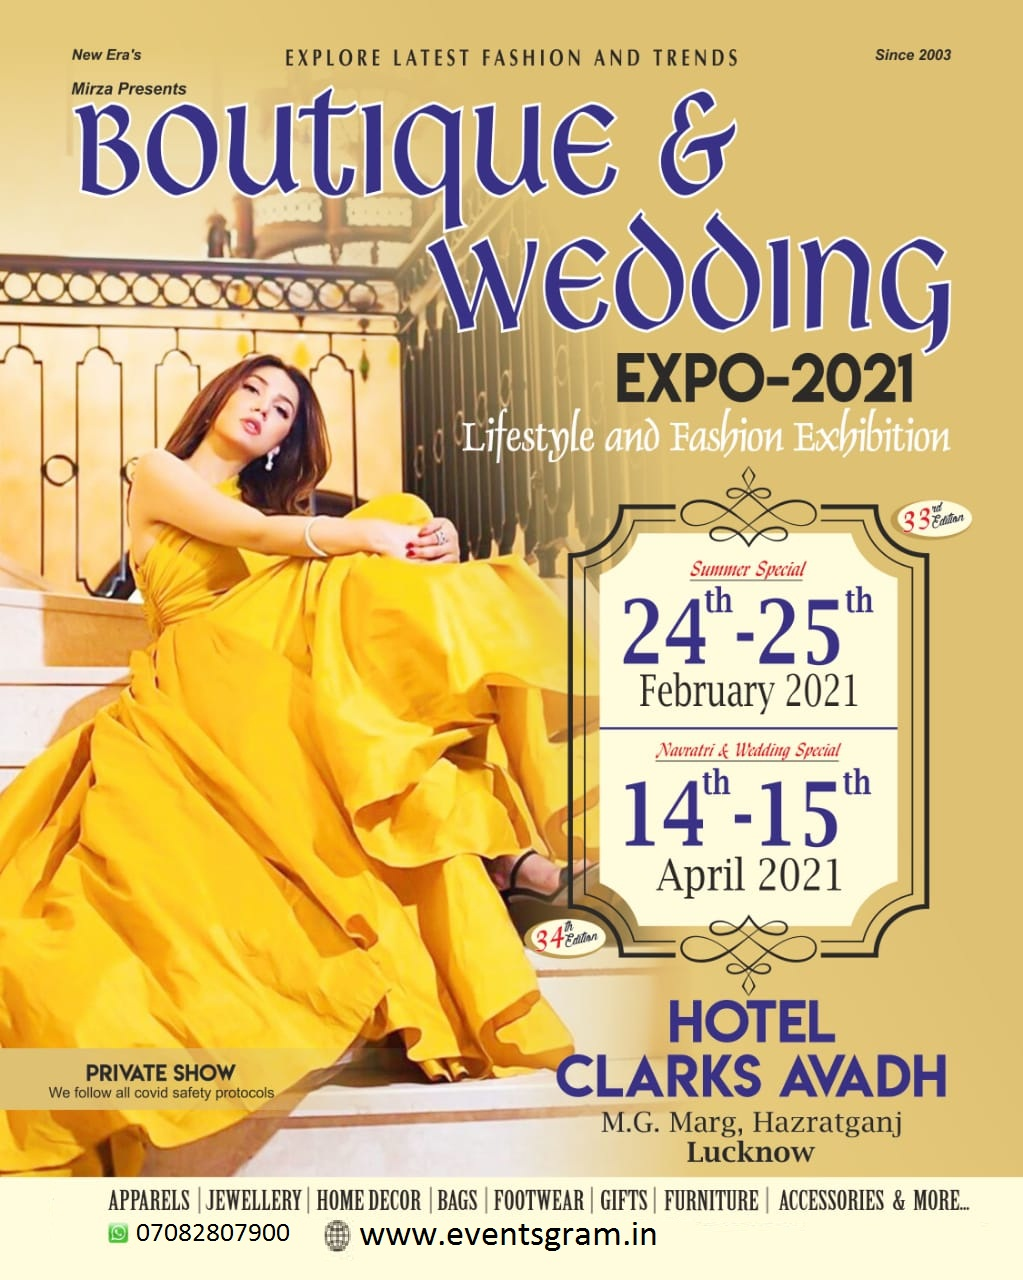 Boutique & Wedding Expo